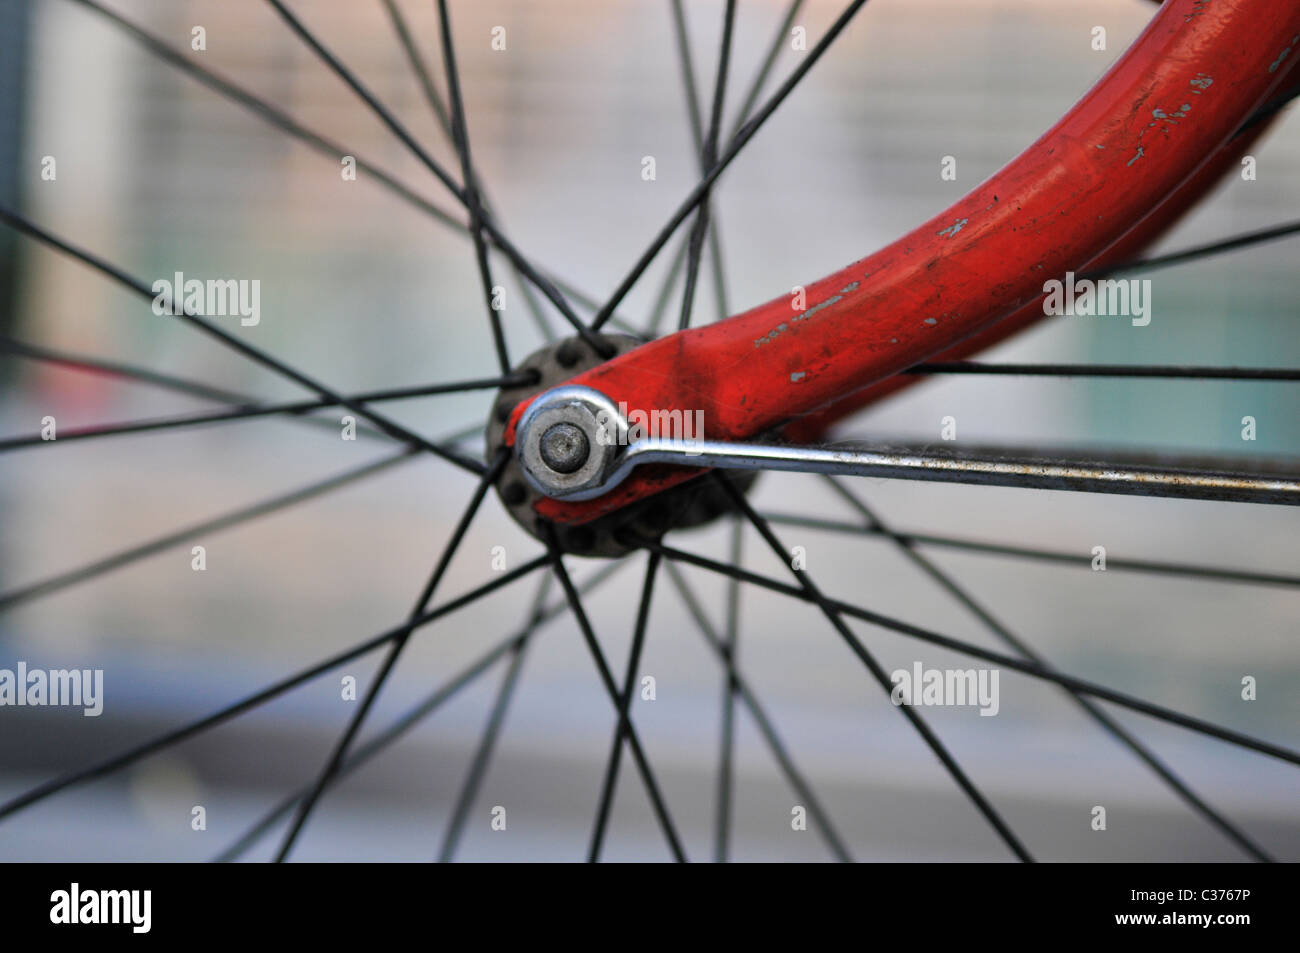 A bike felly with some spokes and the center fitting. - Stock Image